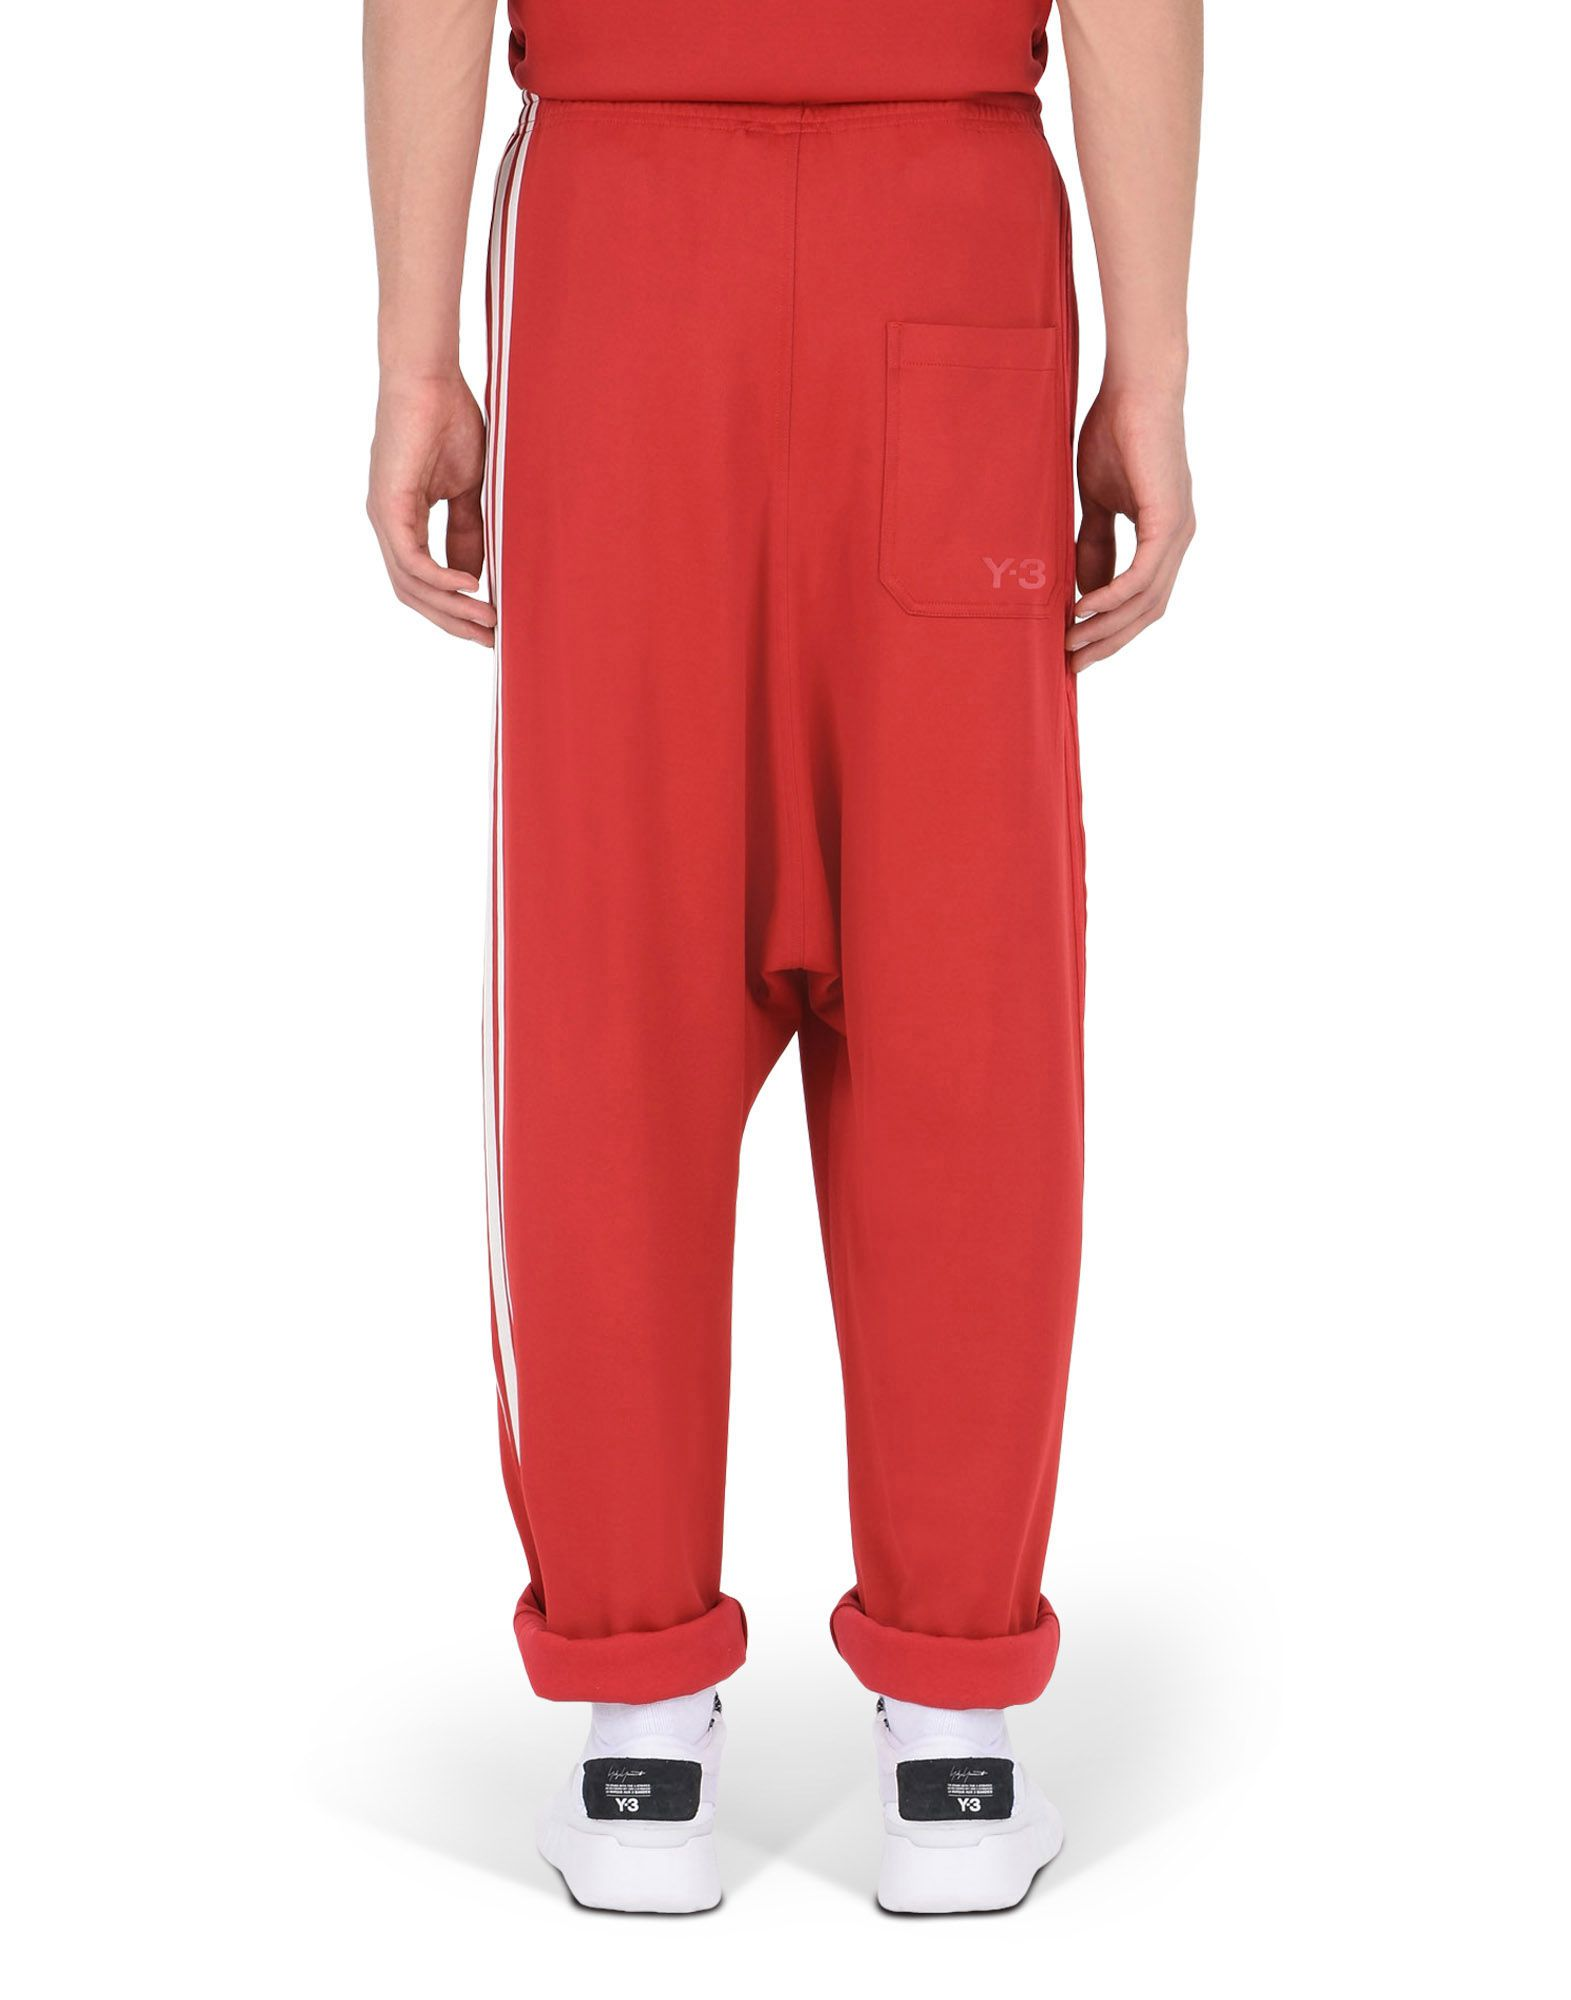 Y 3 Stripes Wide Pants TracksuitAdidas hrdtsQC